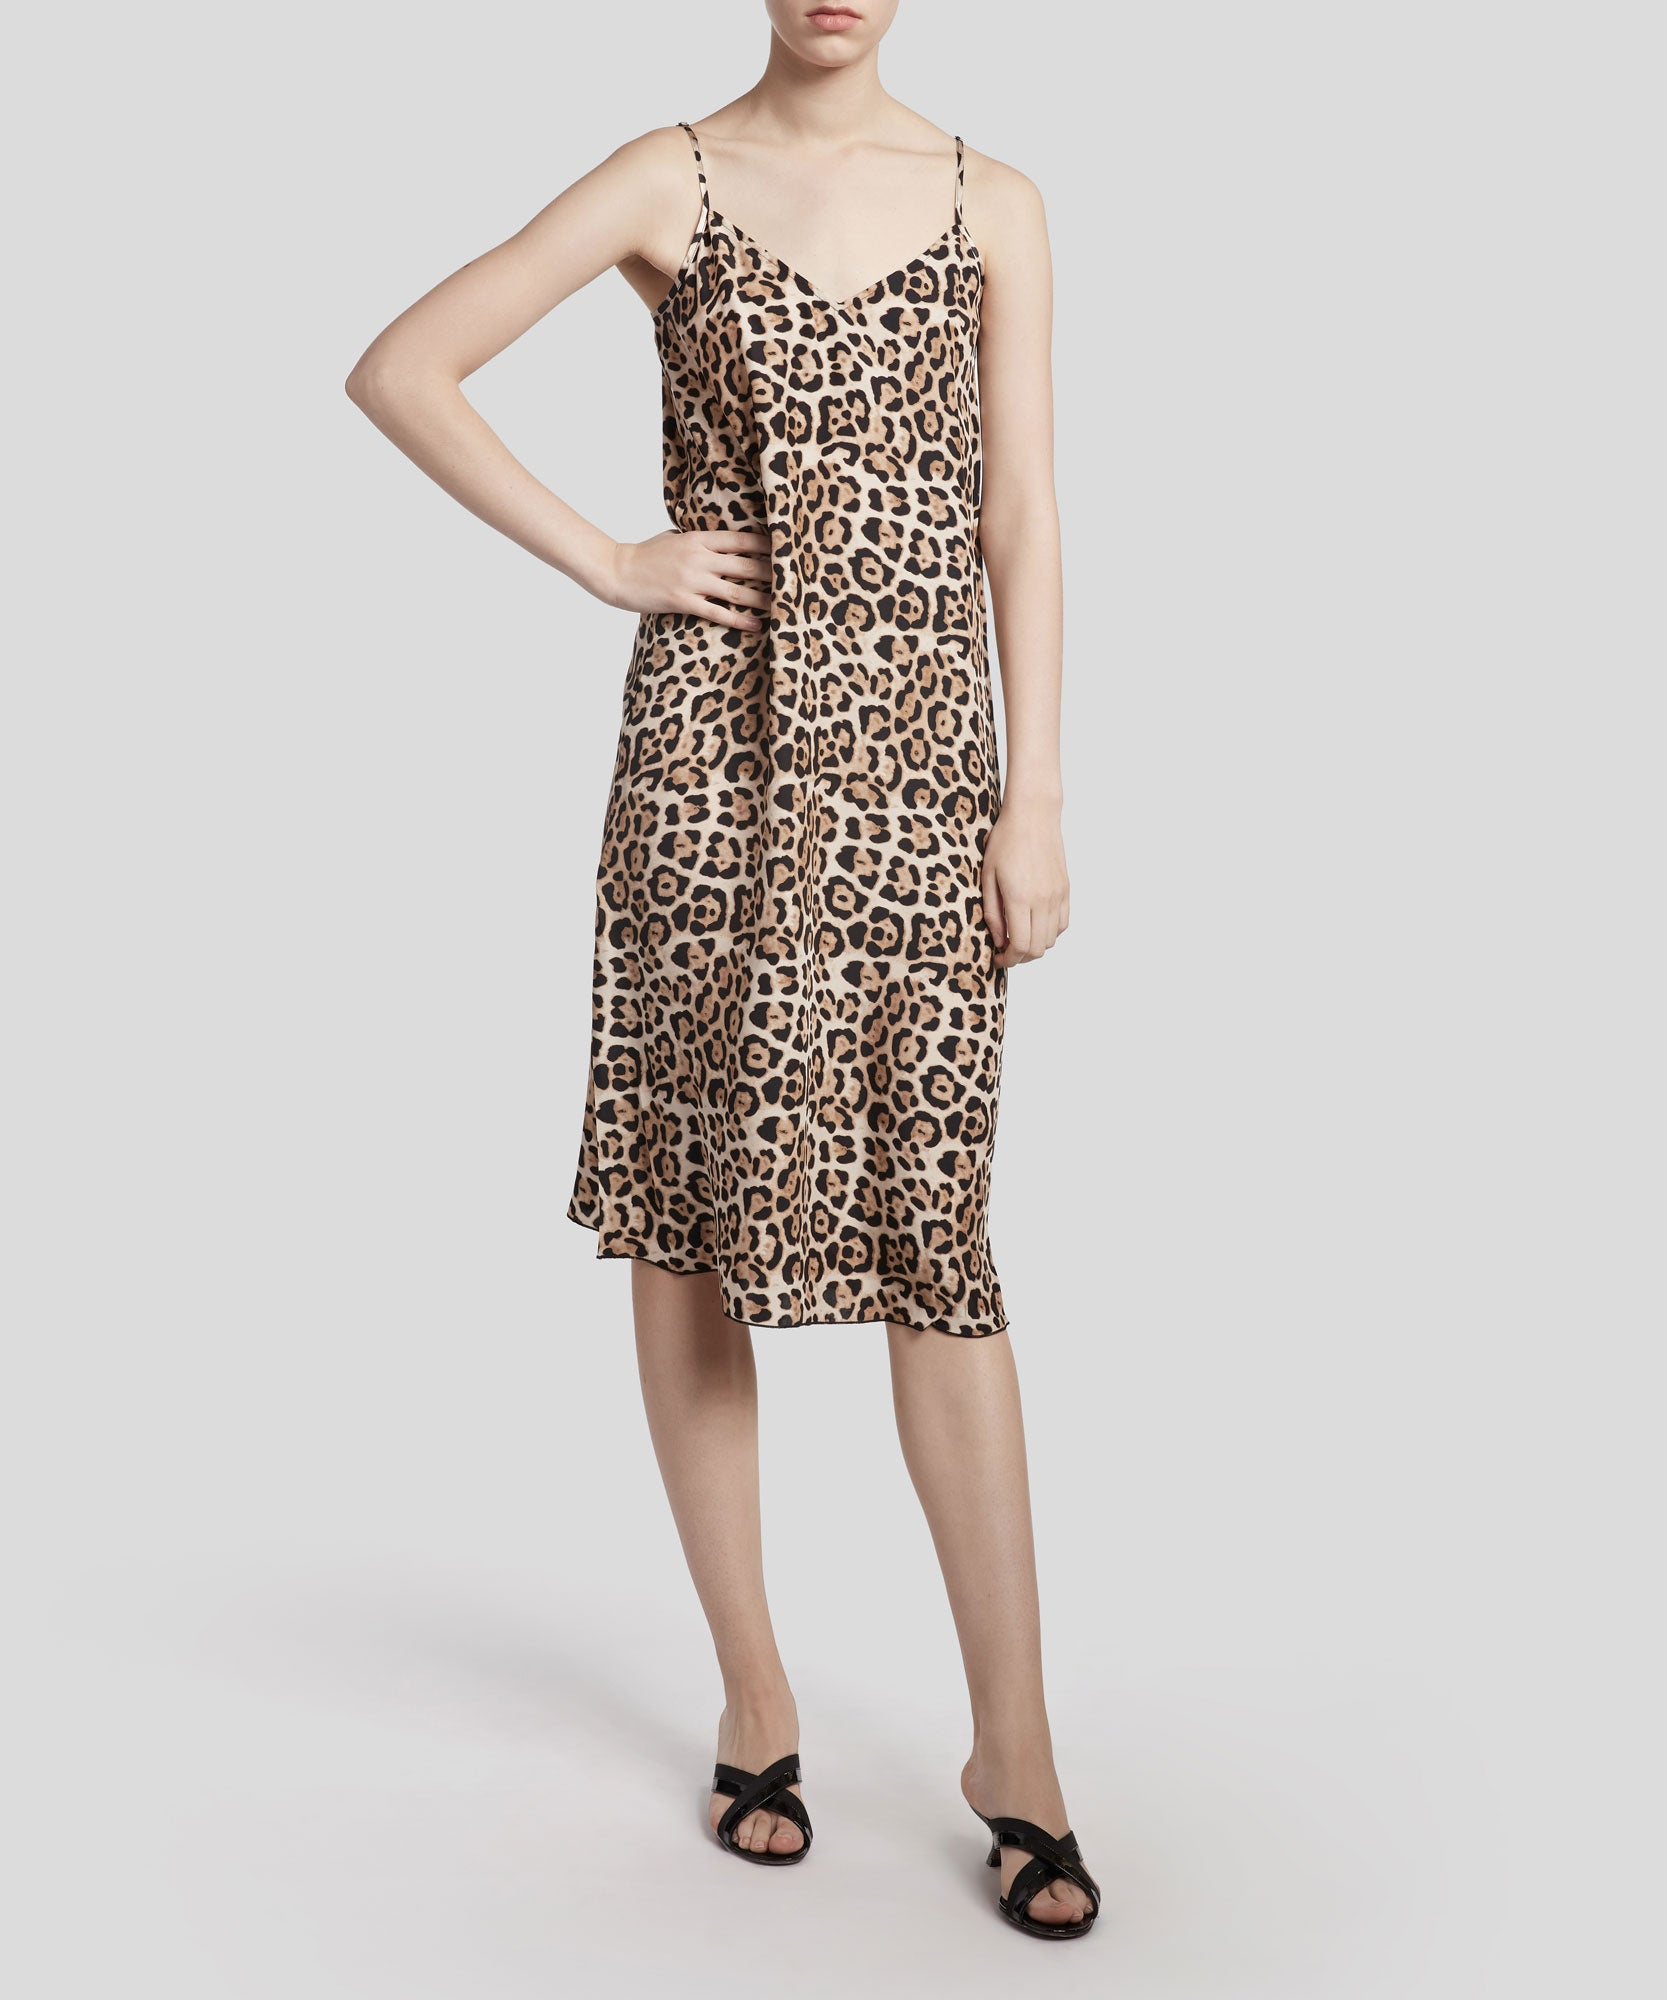 Leopard Drapey Cami Dress - Women's Silk Dress by ATM Anthony Thomas Melillo